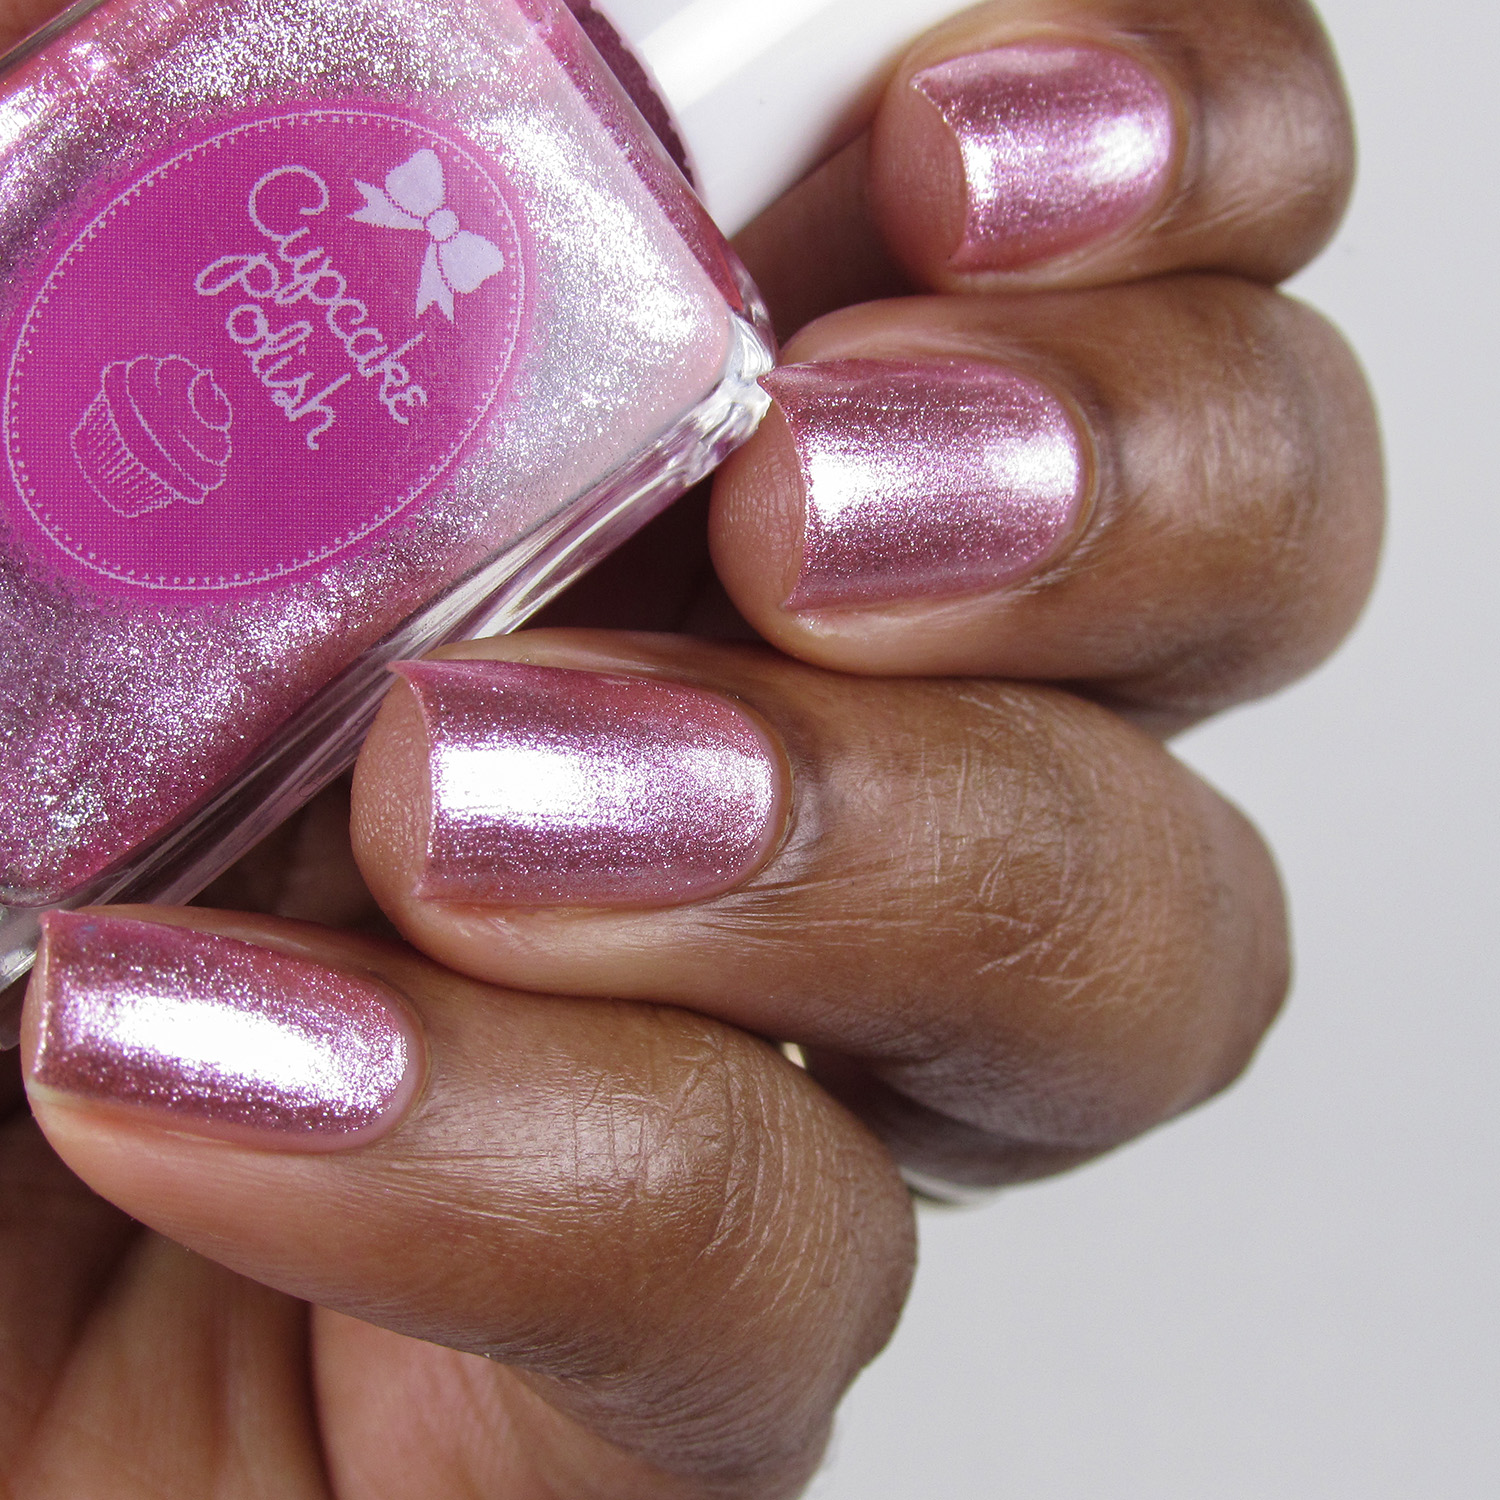 Celebrate - Bottle side - 5th Year Anniversary Trio - Cupcake Polish